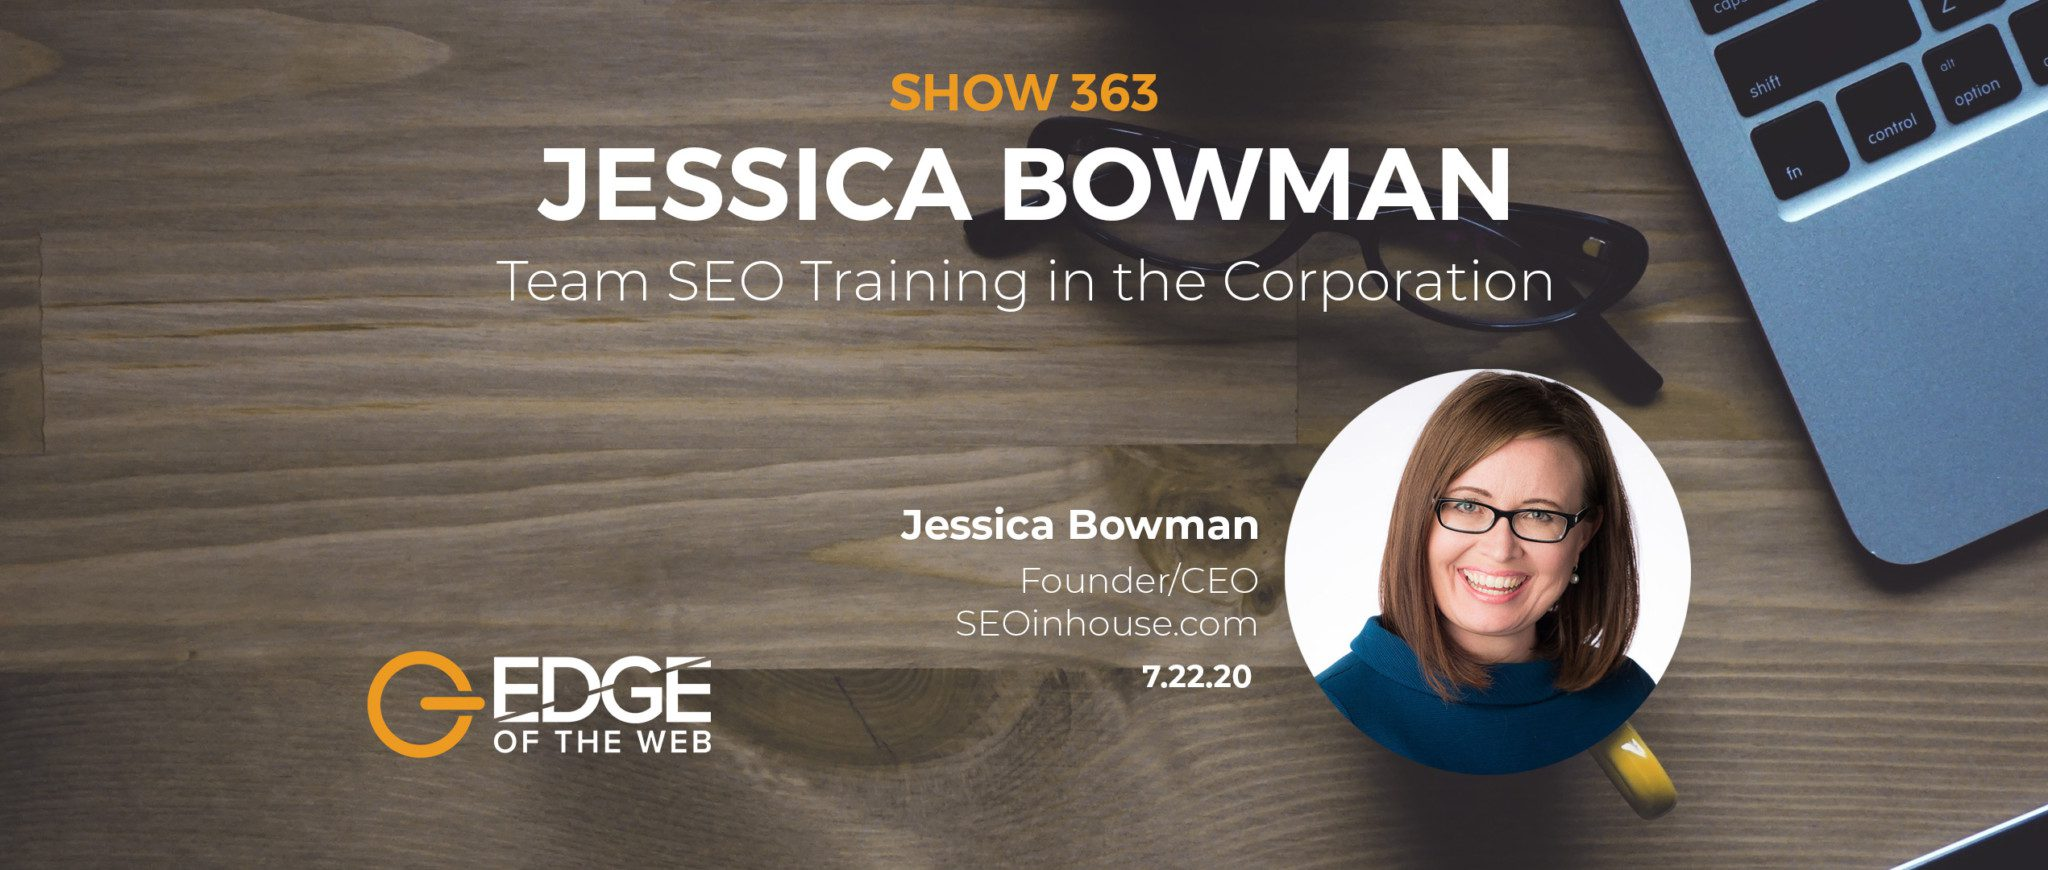 Jessica Bowman EDGE Featured Image EP363